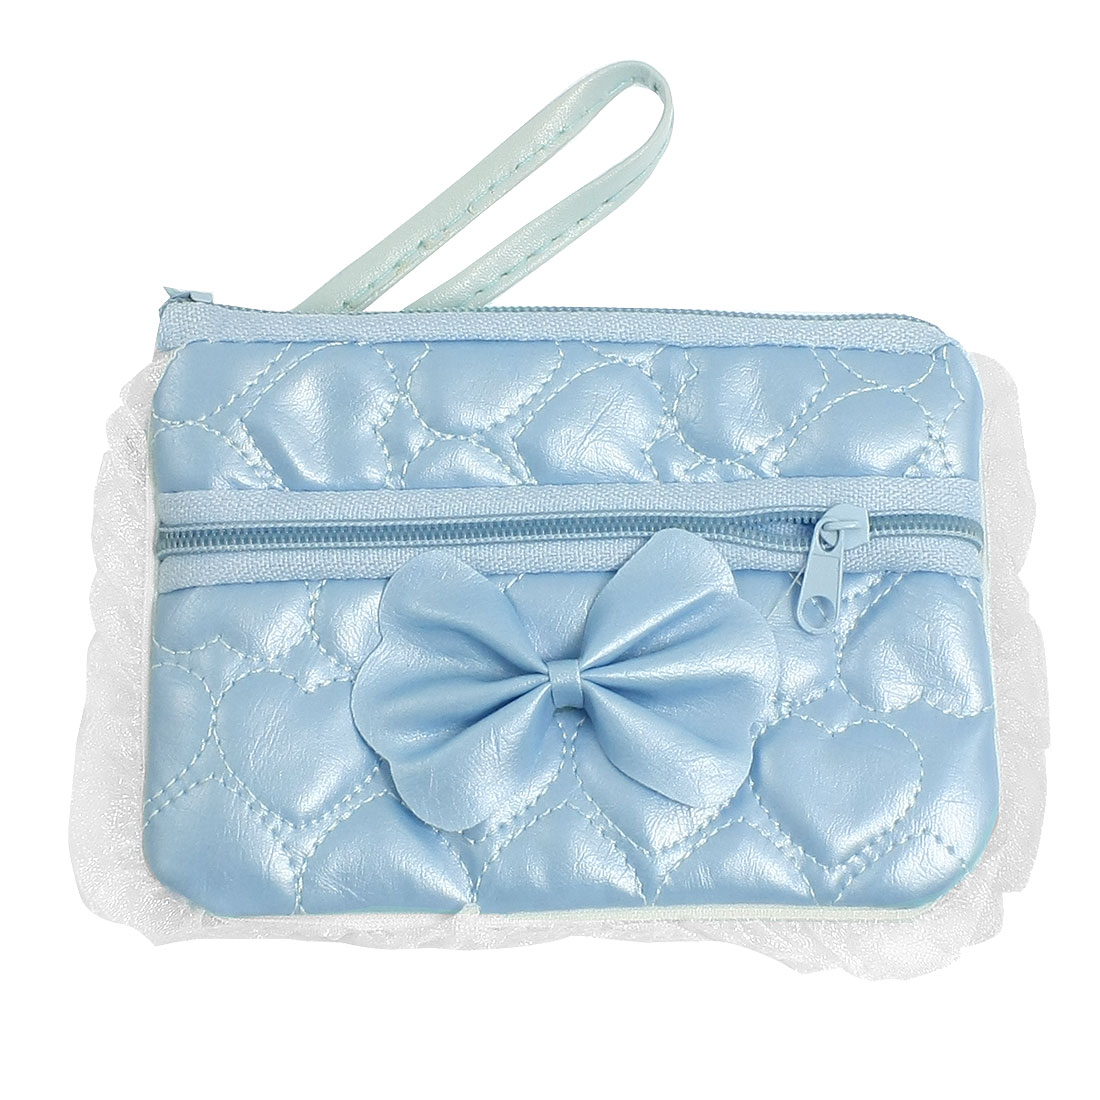 Sponge Lining Embossed Heart Print Blue Faux Leather Phone Purse Bag Holder